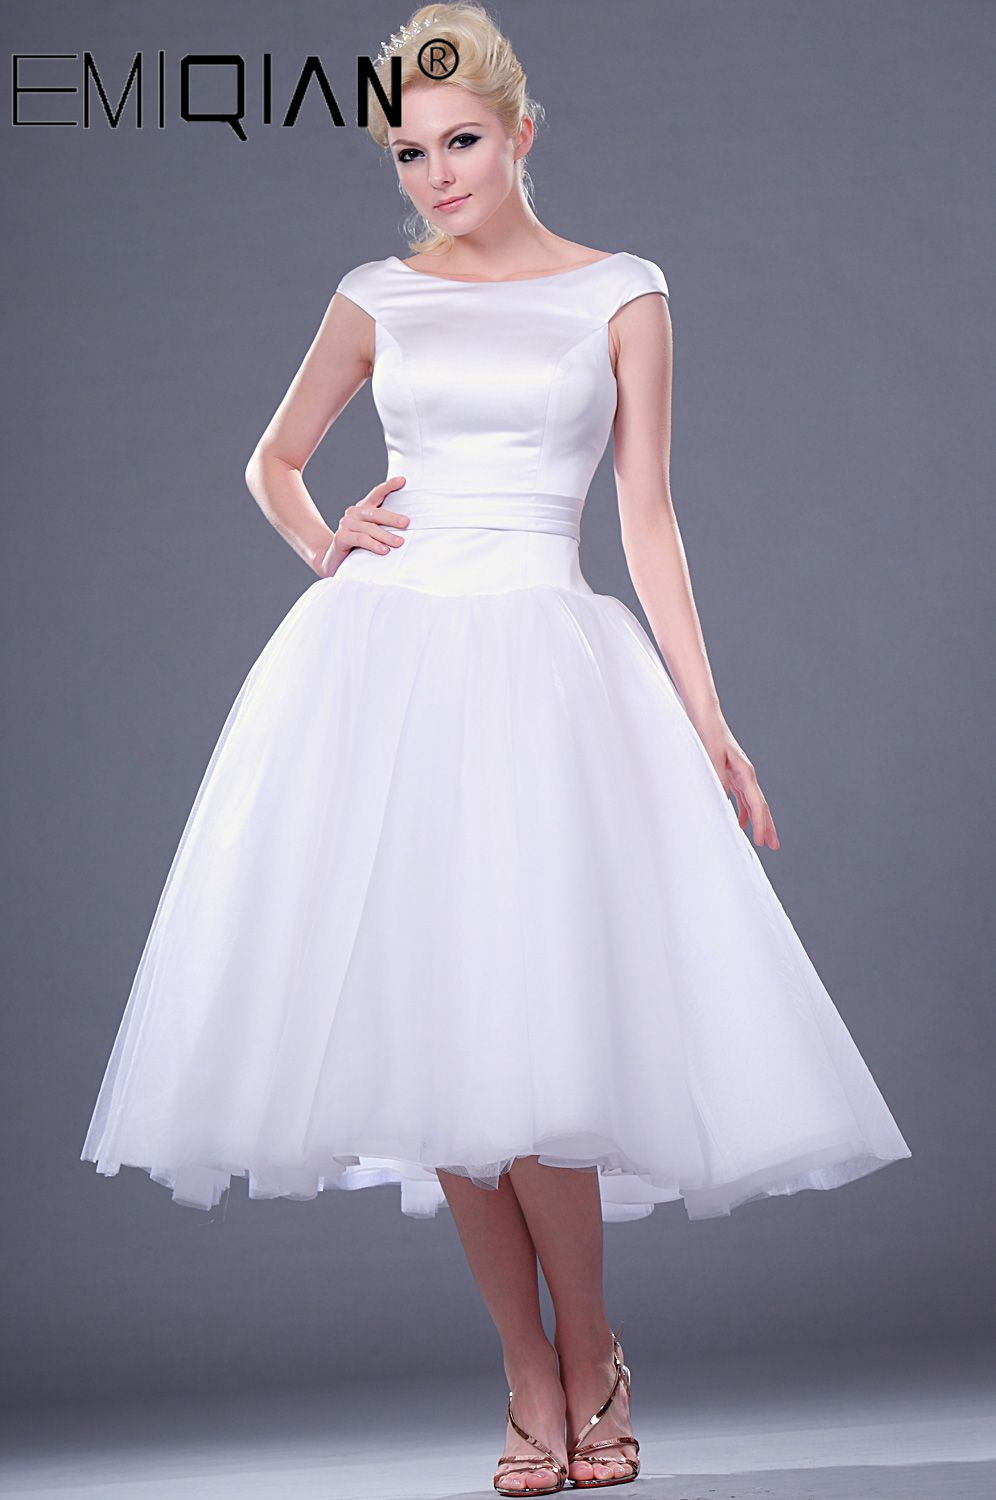 Classical O Neck Cap Sleeve Vintage 1950s Knee Length White/Ivory Short Wedding Dress Custom Made Puffy Tulle Bridal Gown